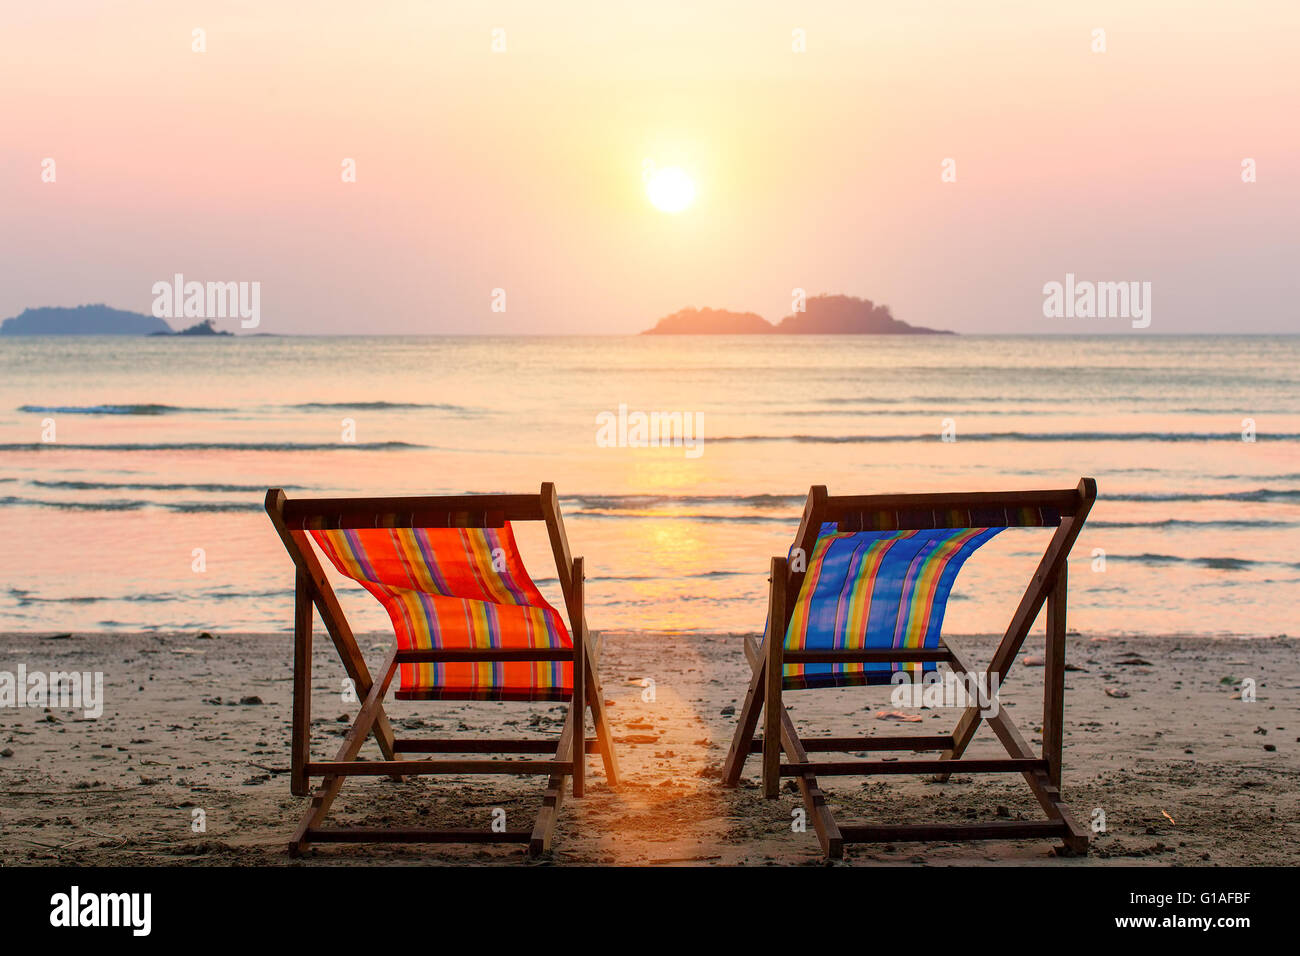 Beach sunset with chairs - Stock Photo Two Lounge Chairs On Sunset Beach